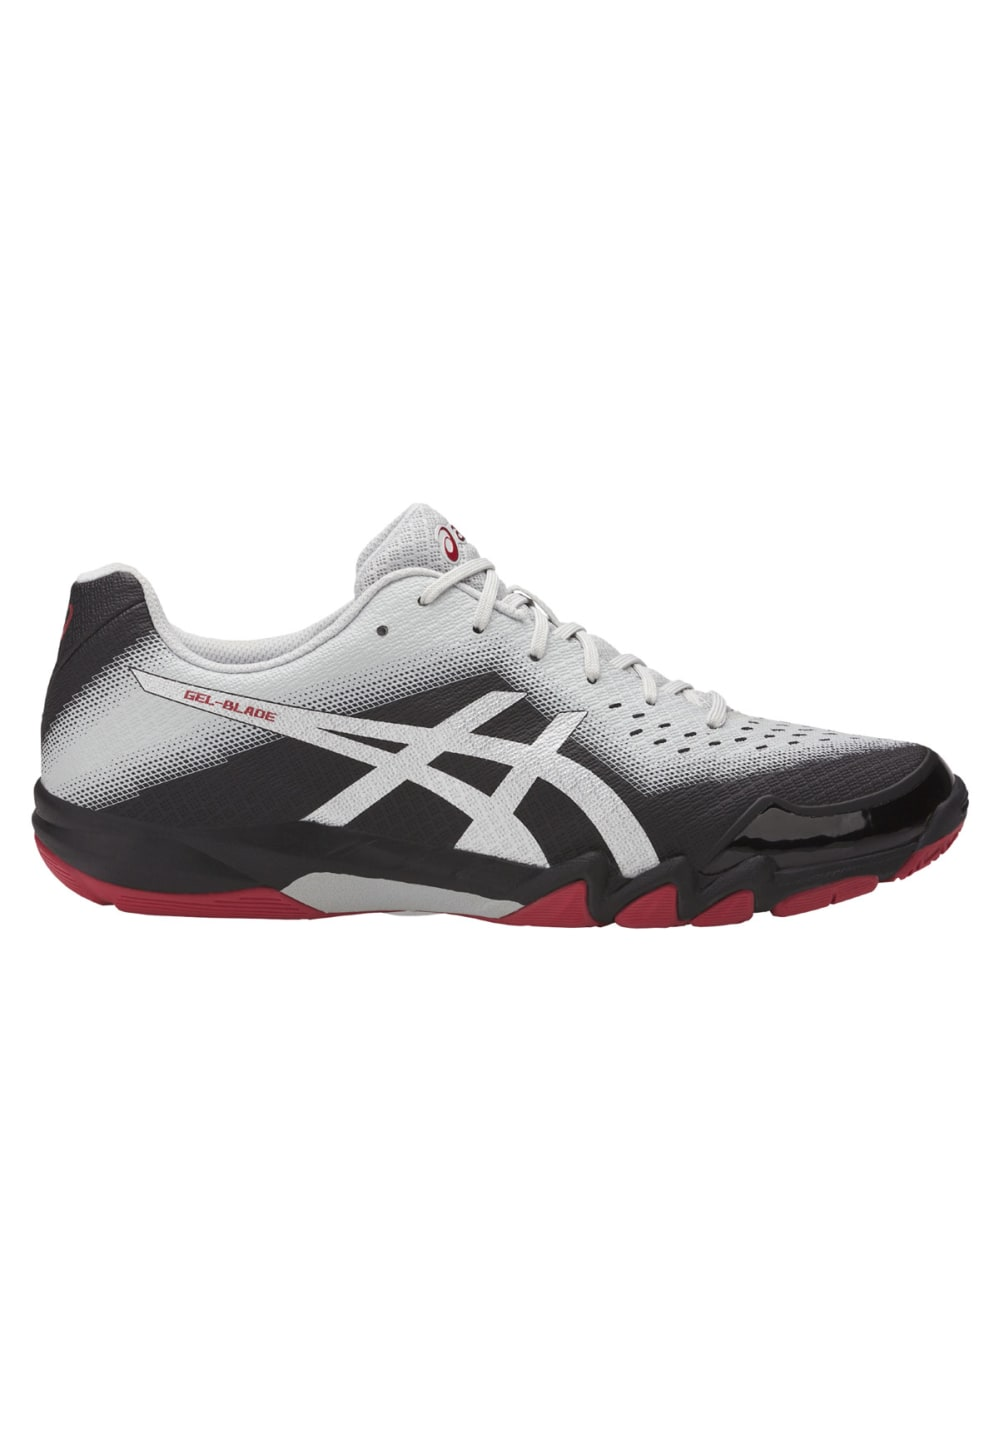 Pour Sports Chaussures En Homme Gris Salle Asics 6 Gel Blade W2YDH9EI